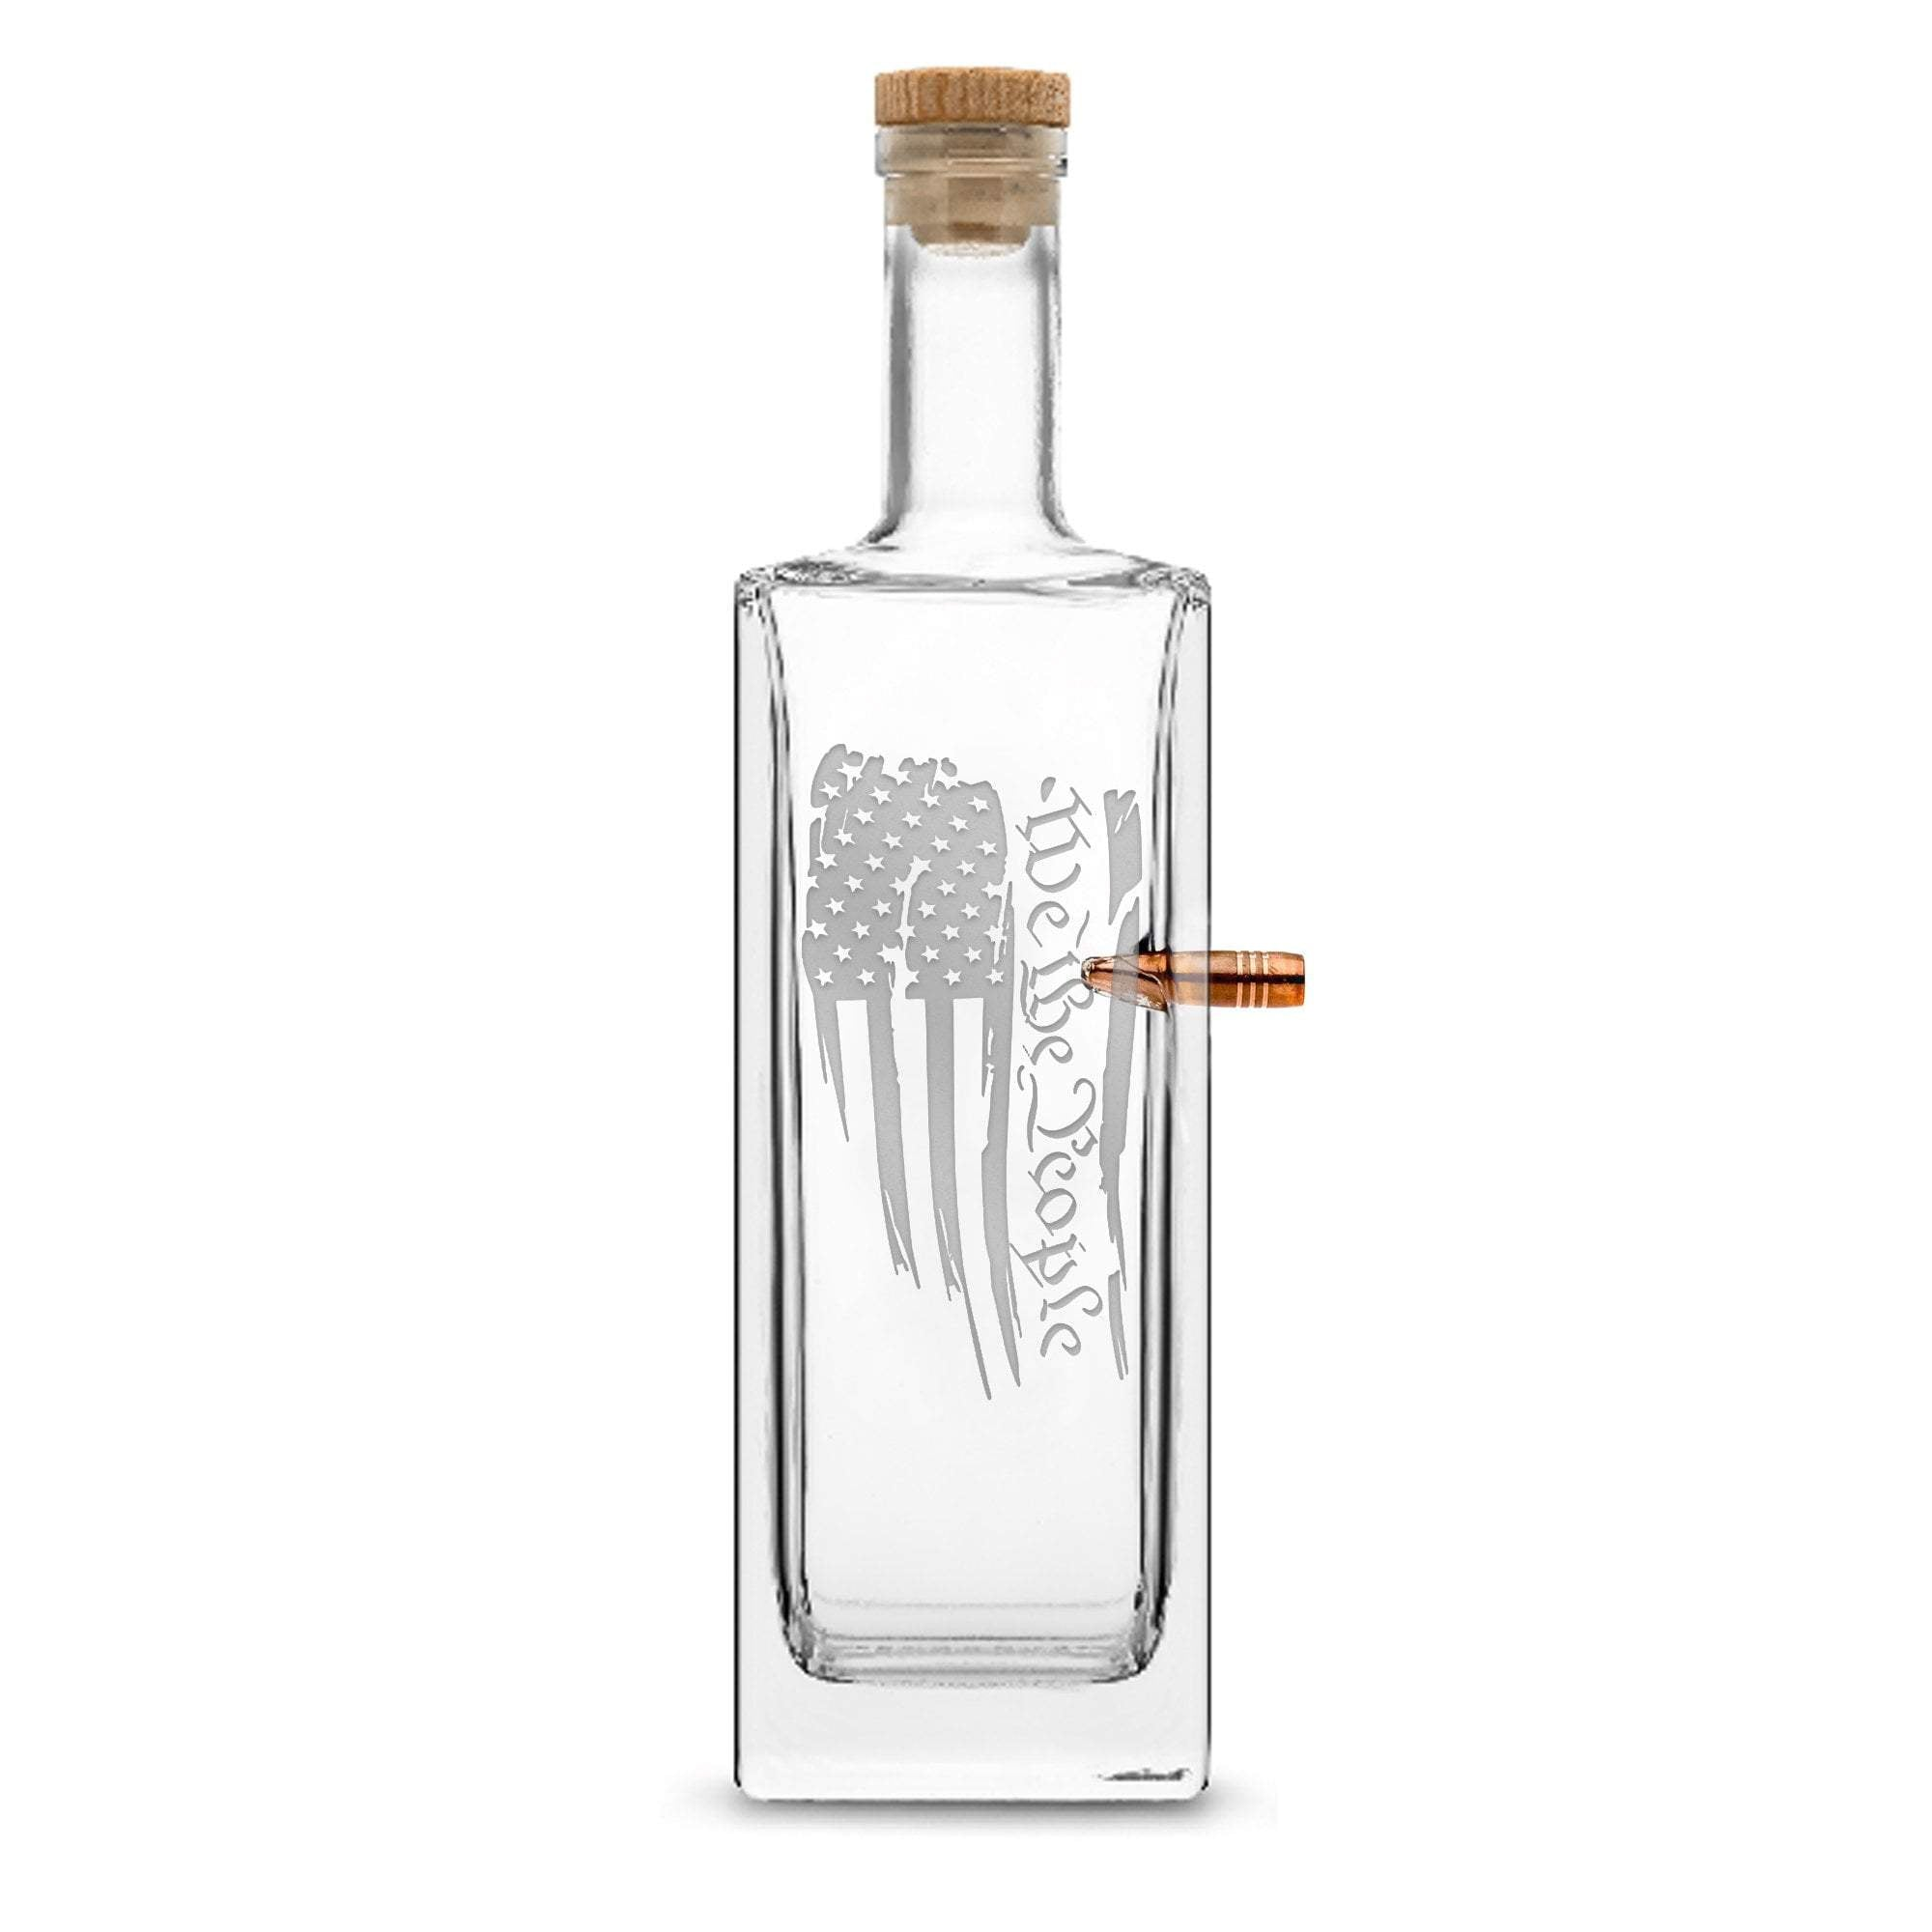 Sandblasted PREMIUM .50 CAL BMG BULLET BOTTLE, LIBERTY WHISKEY DECANTER CORK STOPPER, WE THE PEOPLE FLAG, 750ML by Integrity Bottles